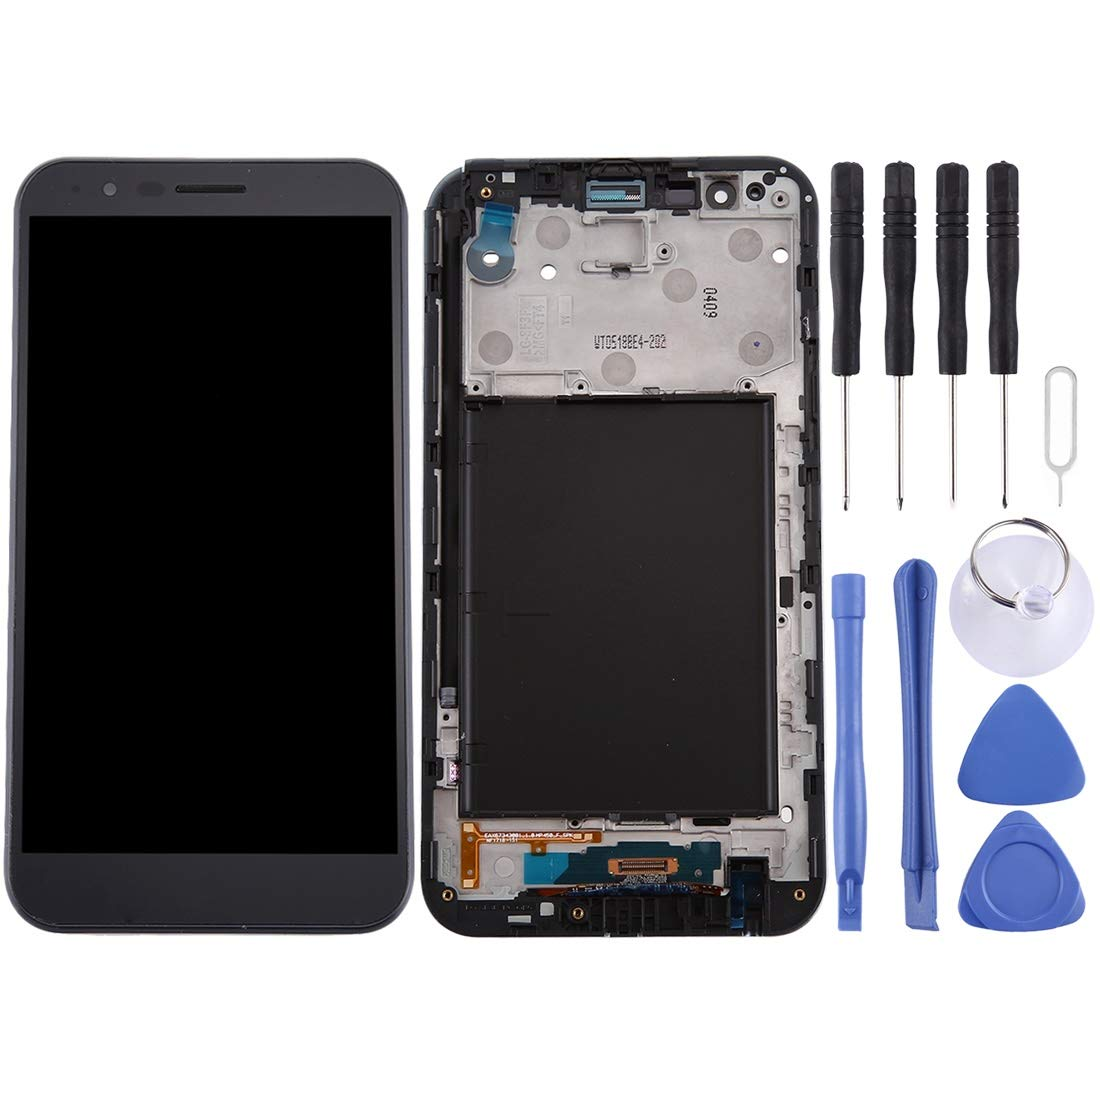 Goodao Complete kit Replace LCD Screen and Digitizer Full Assembly with Frame for LG Stylo 3 Plus / TP450 / MP450 (Black) (Color : Black)